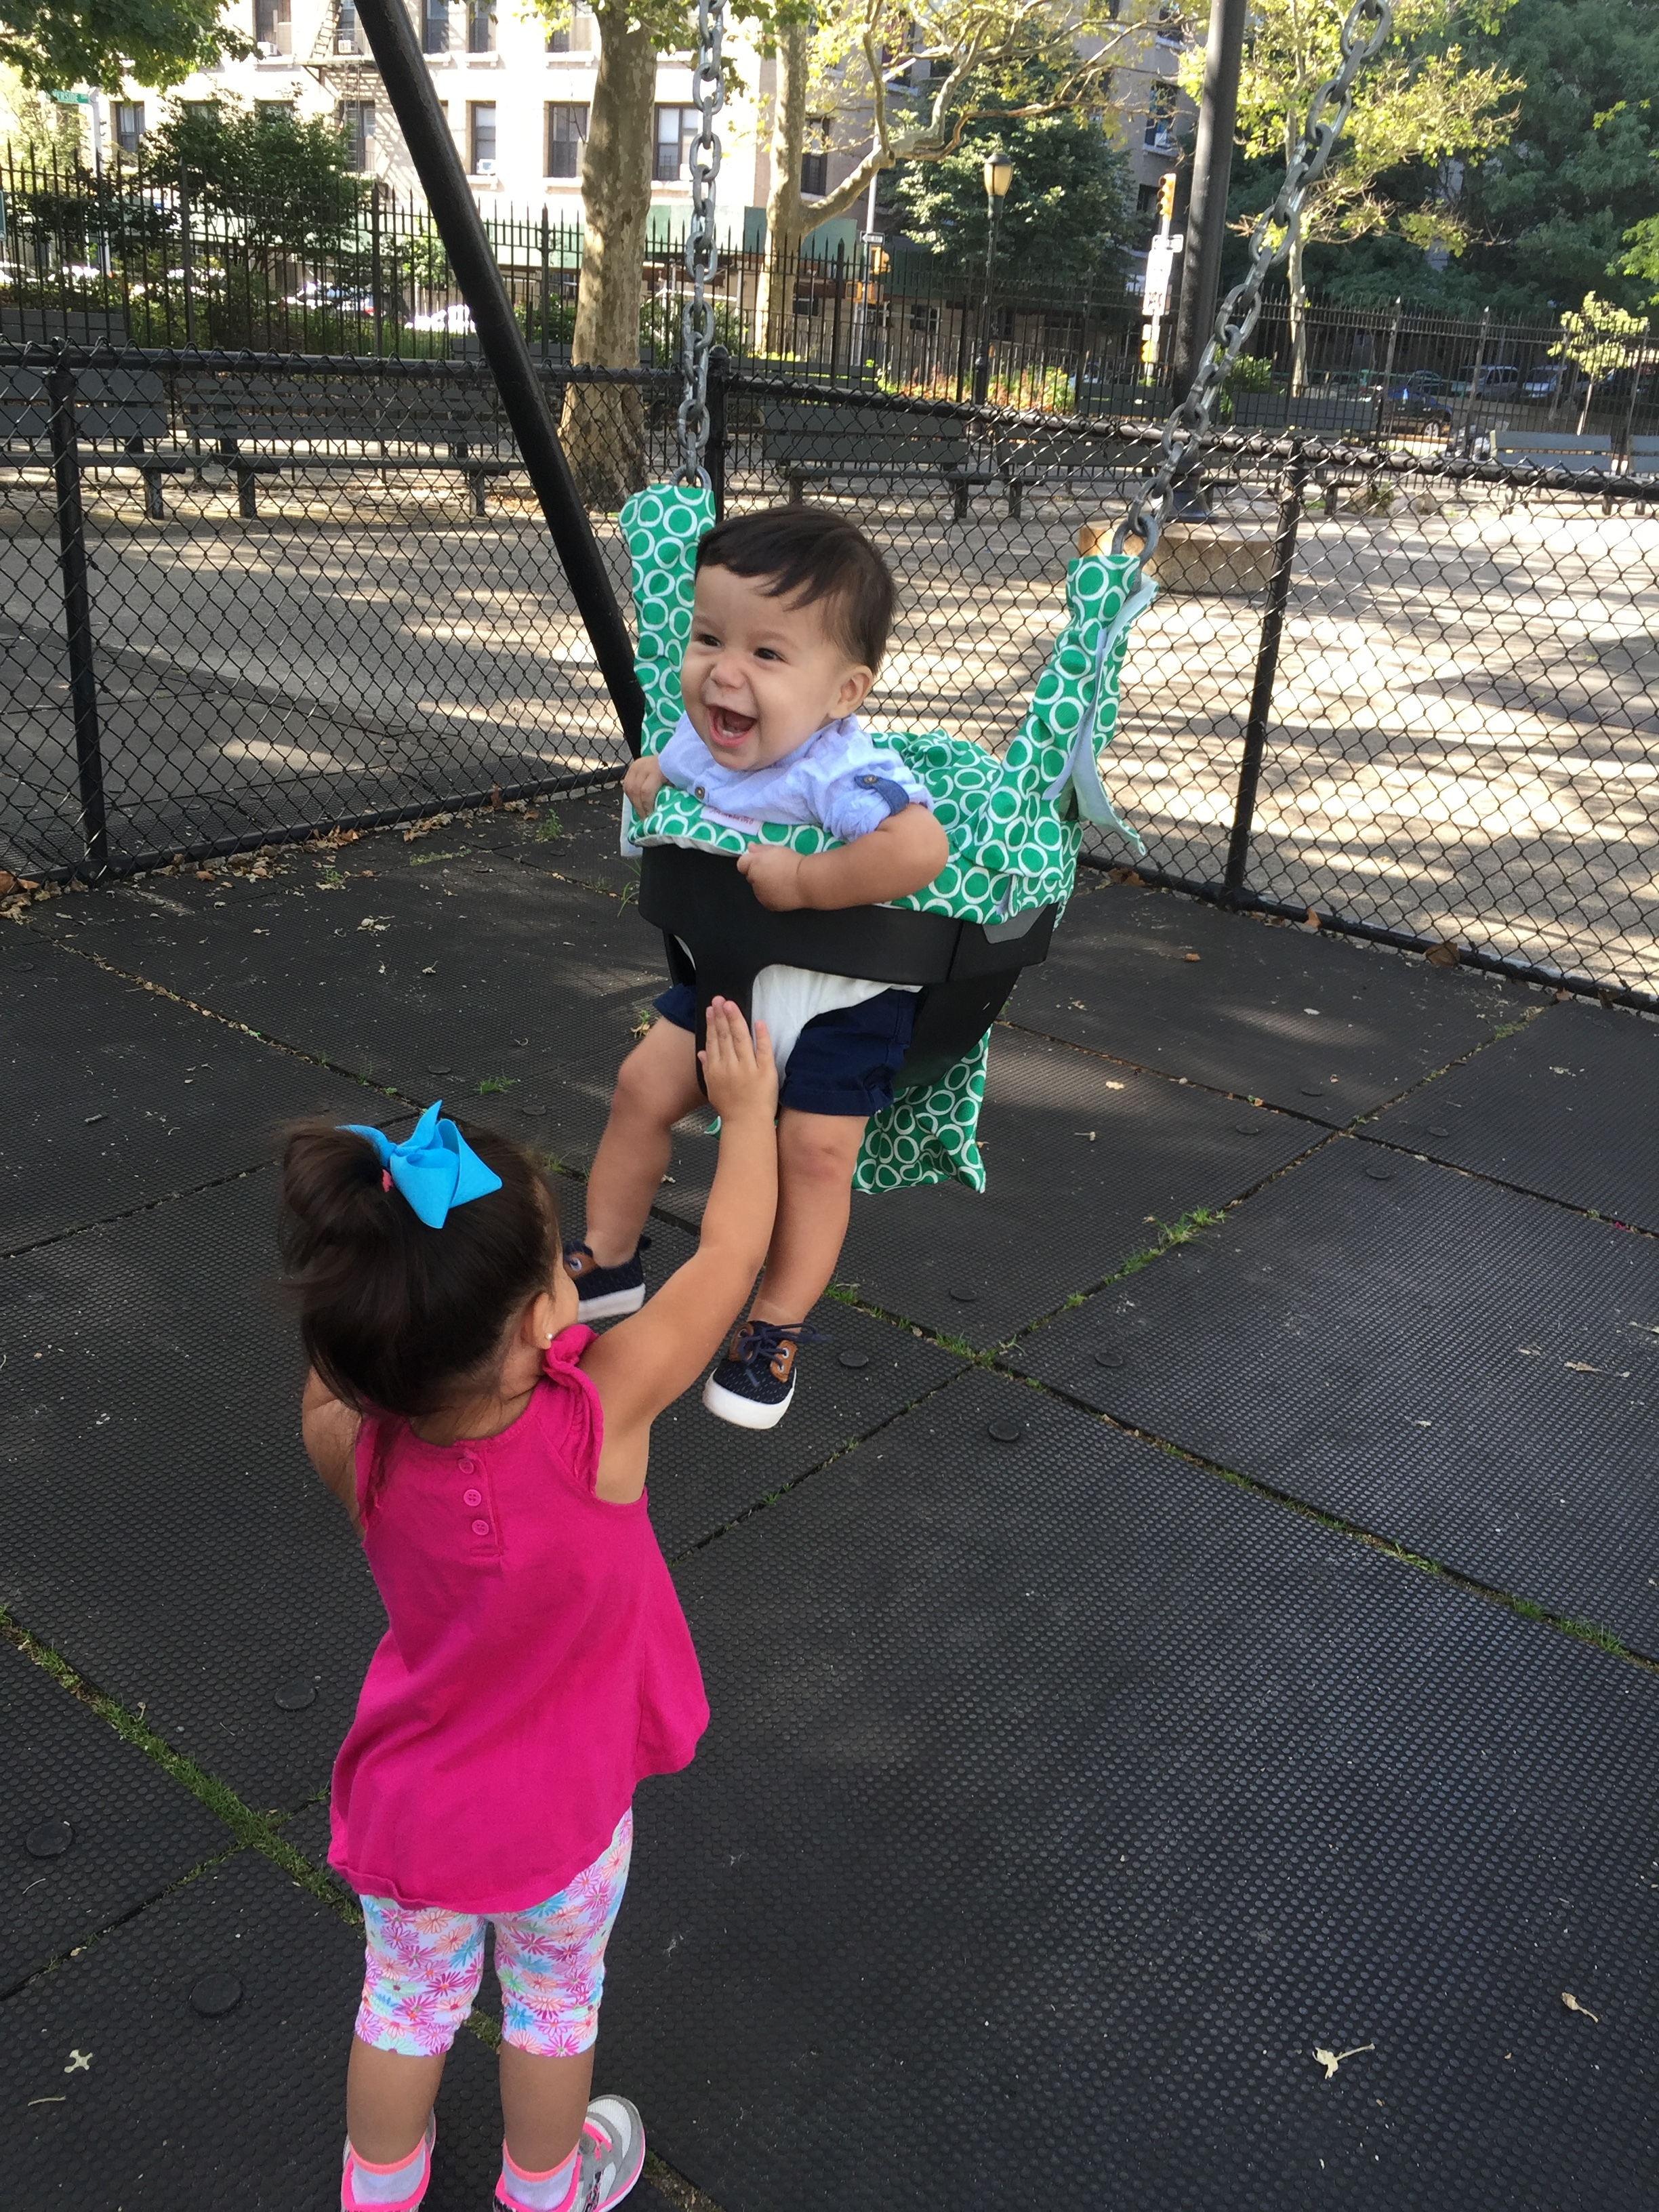 Swinging with Aly!